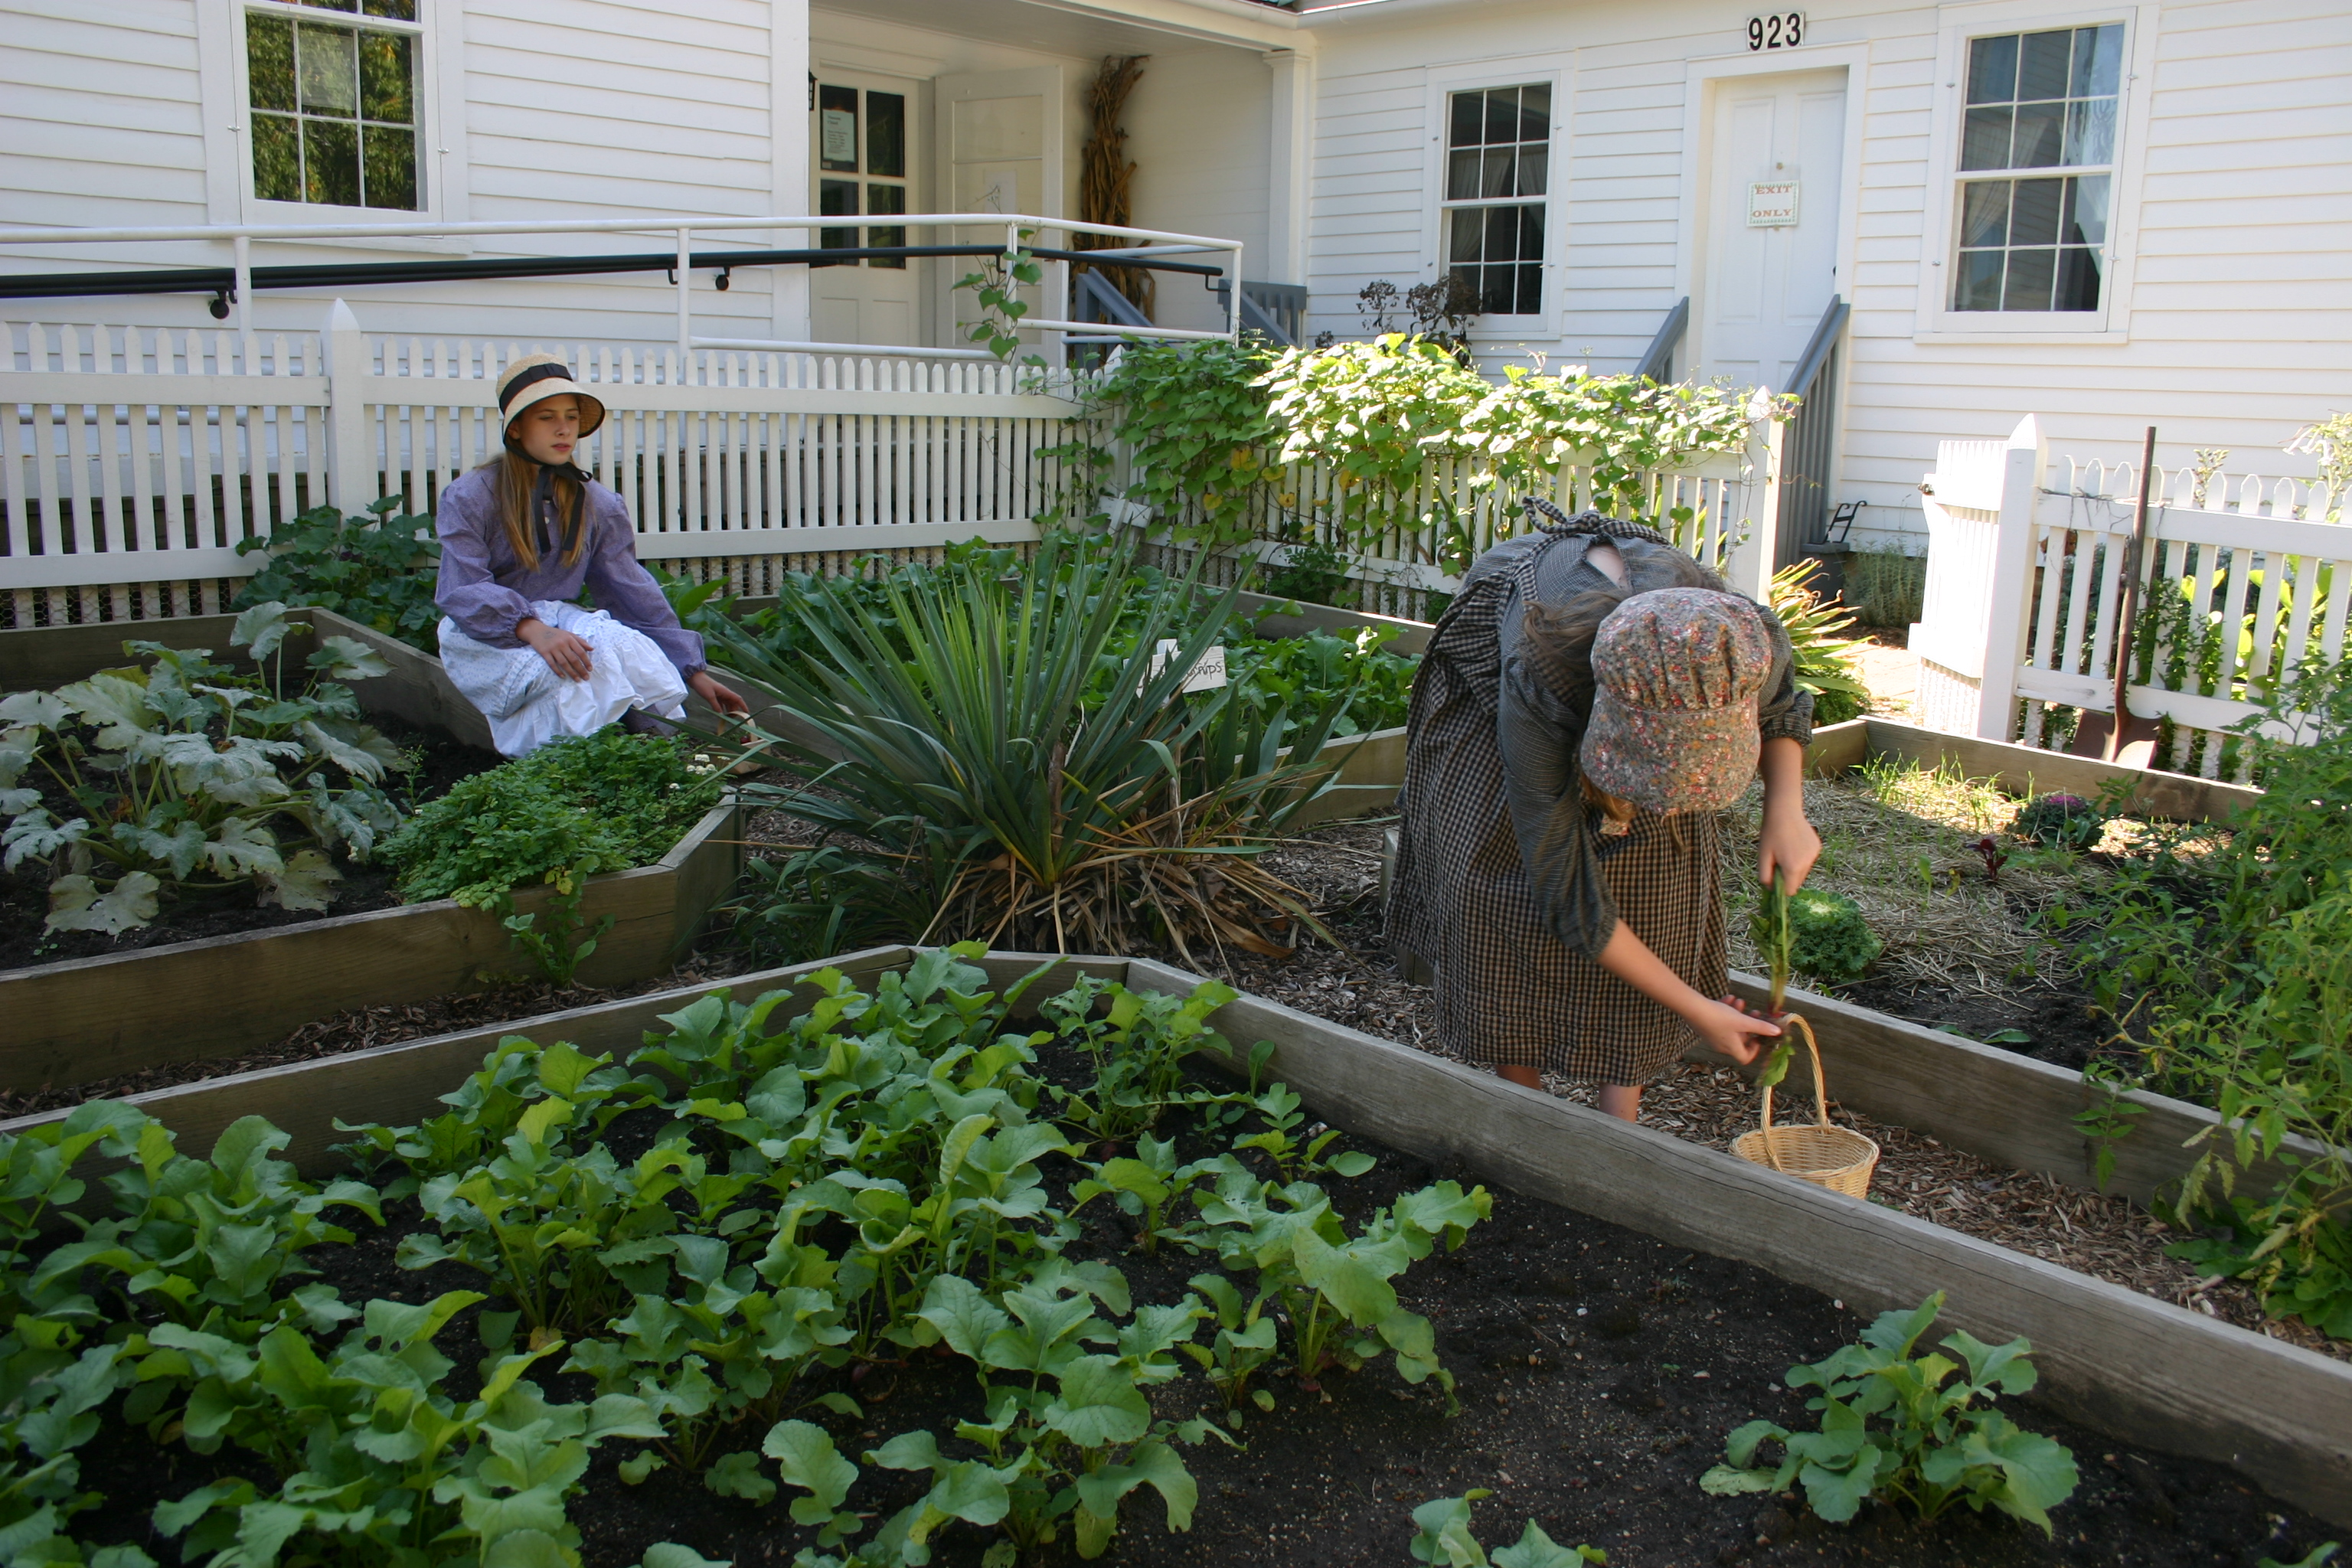 Volunteers tend and harvest the garden